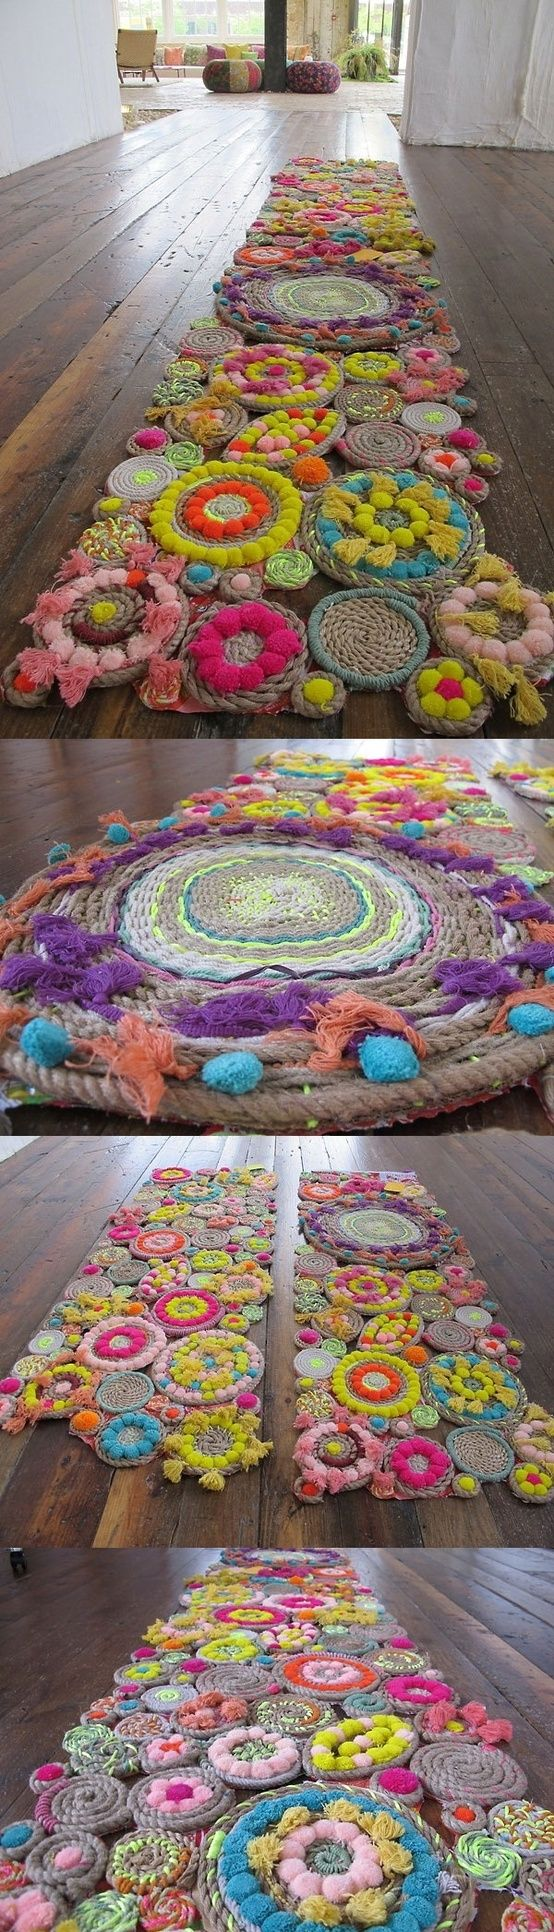 these rugs!! <3 <3 <3